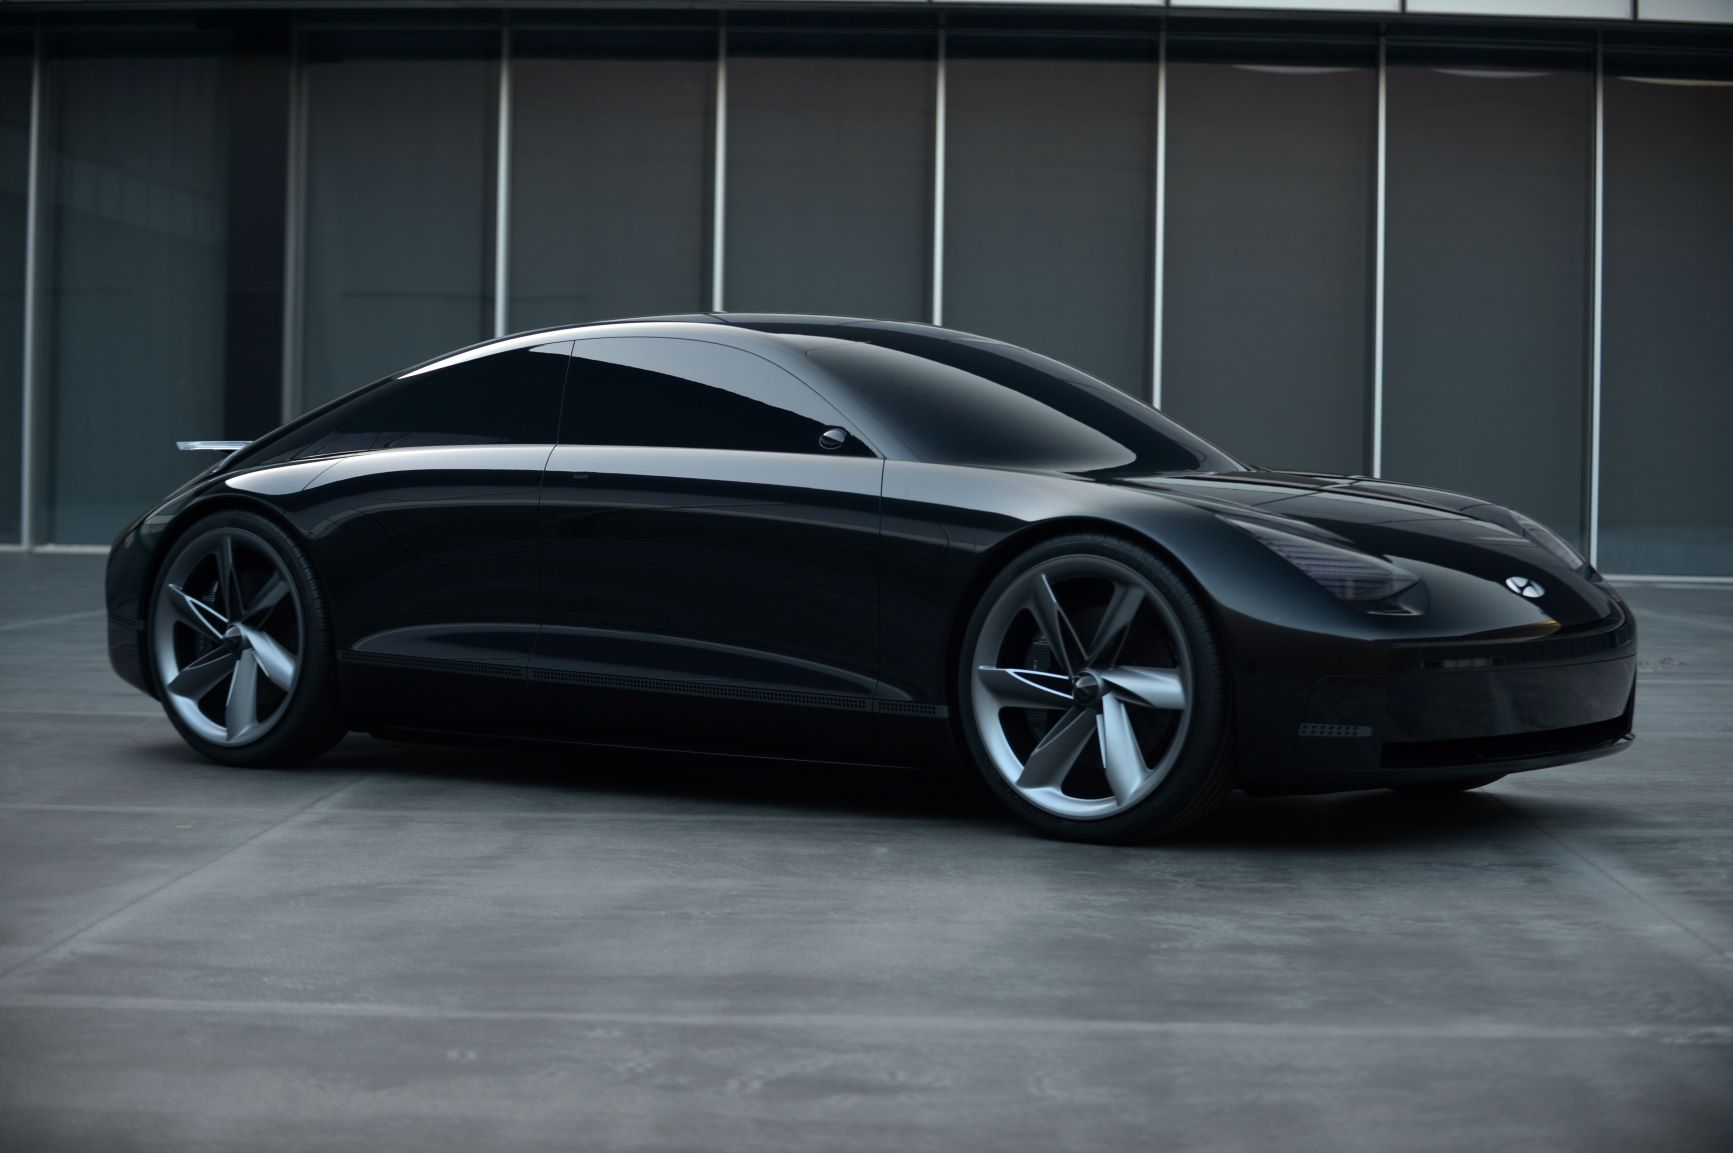 Hyundai Motor Prophecy Concept Electric Vehicle